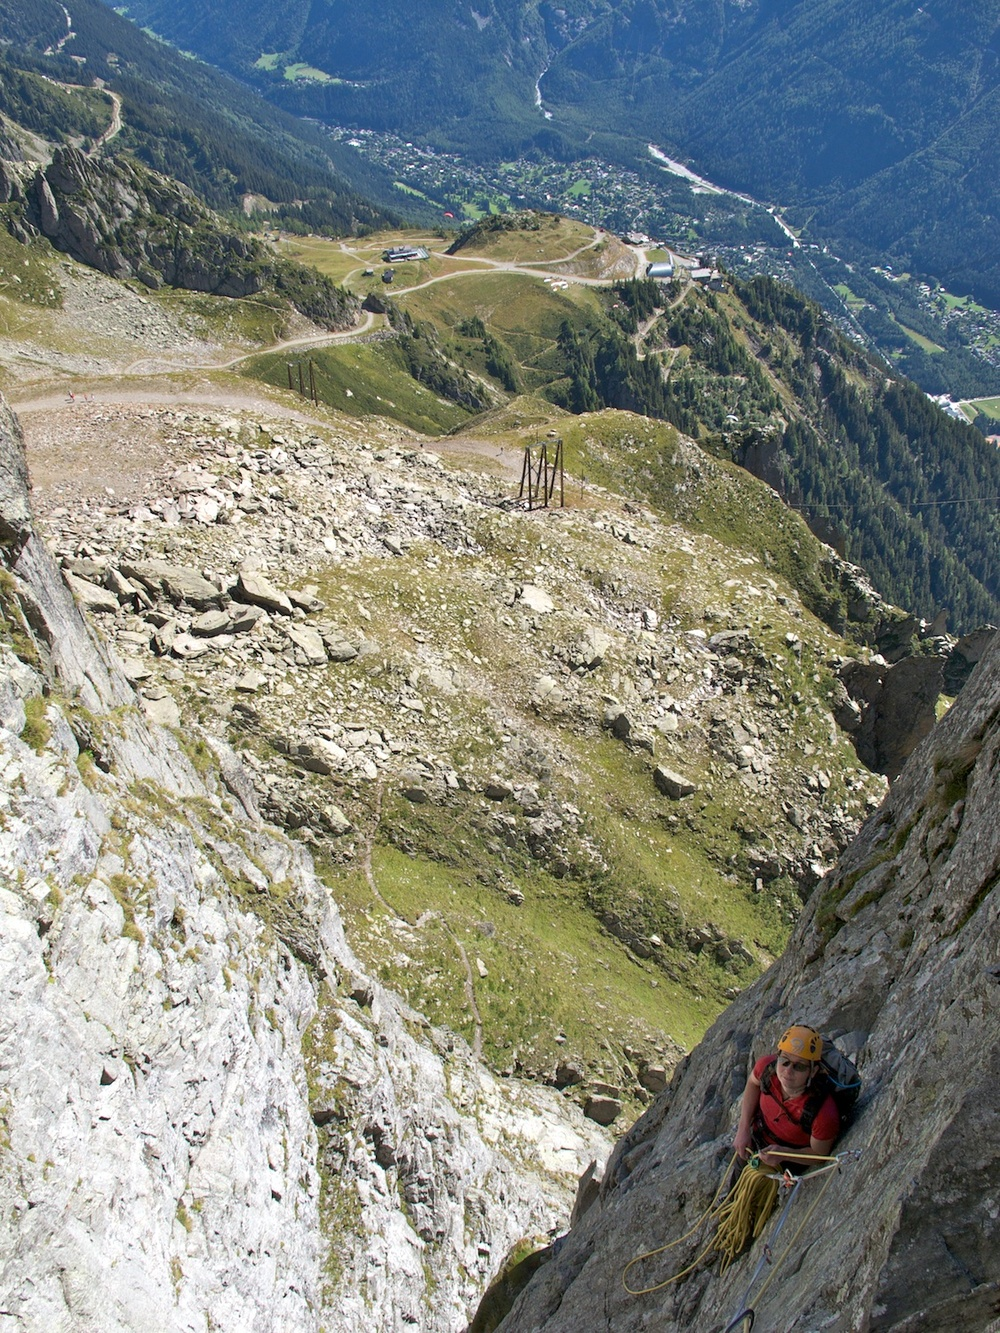 Climbing the Brévent in Chamonix. There is a paragliding launch behind